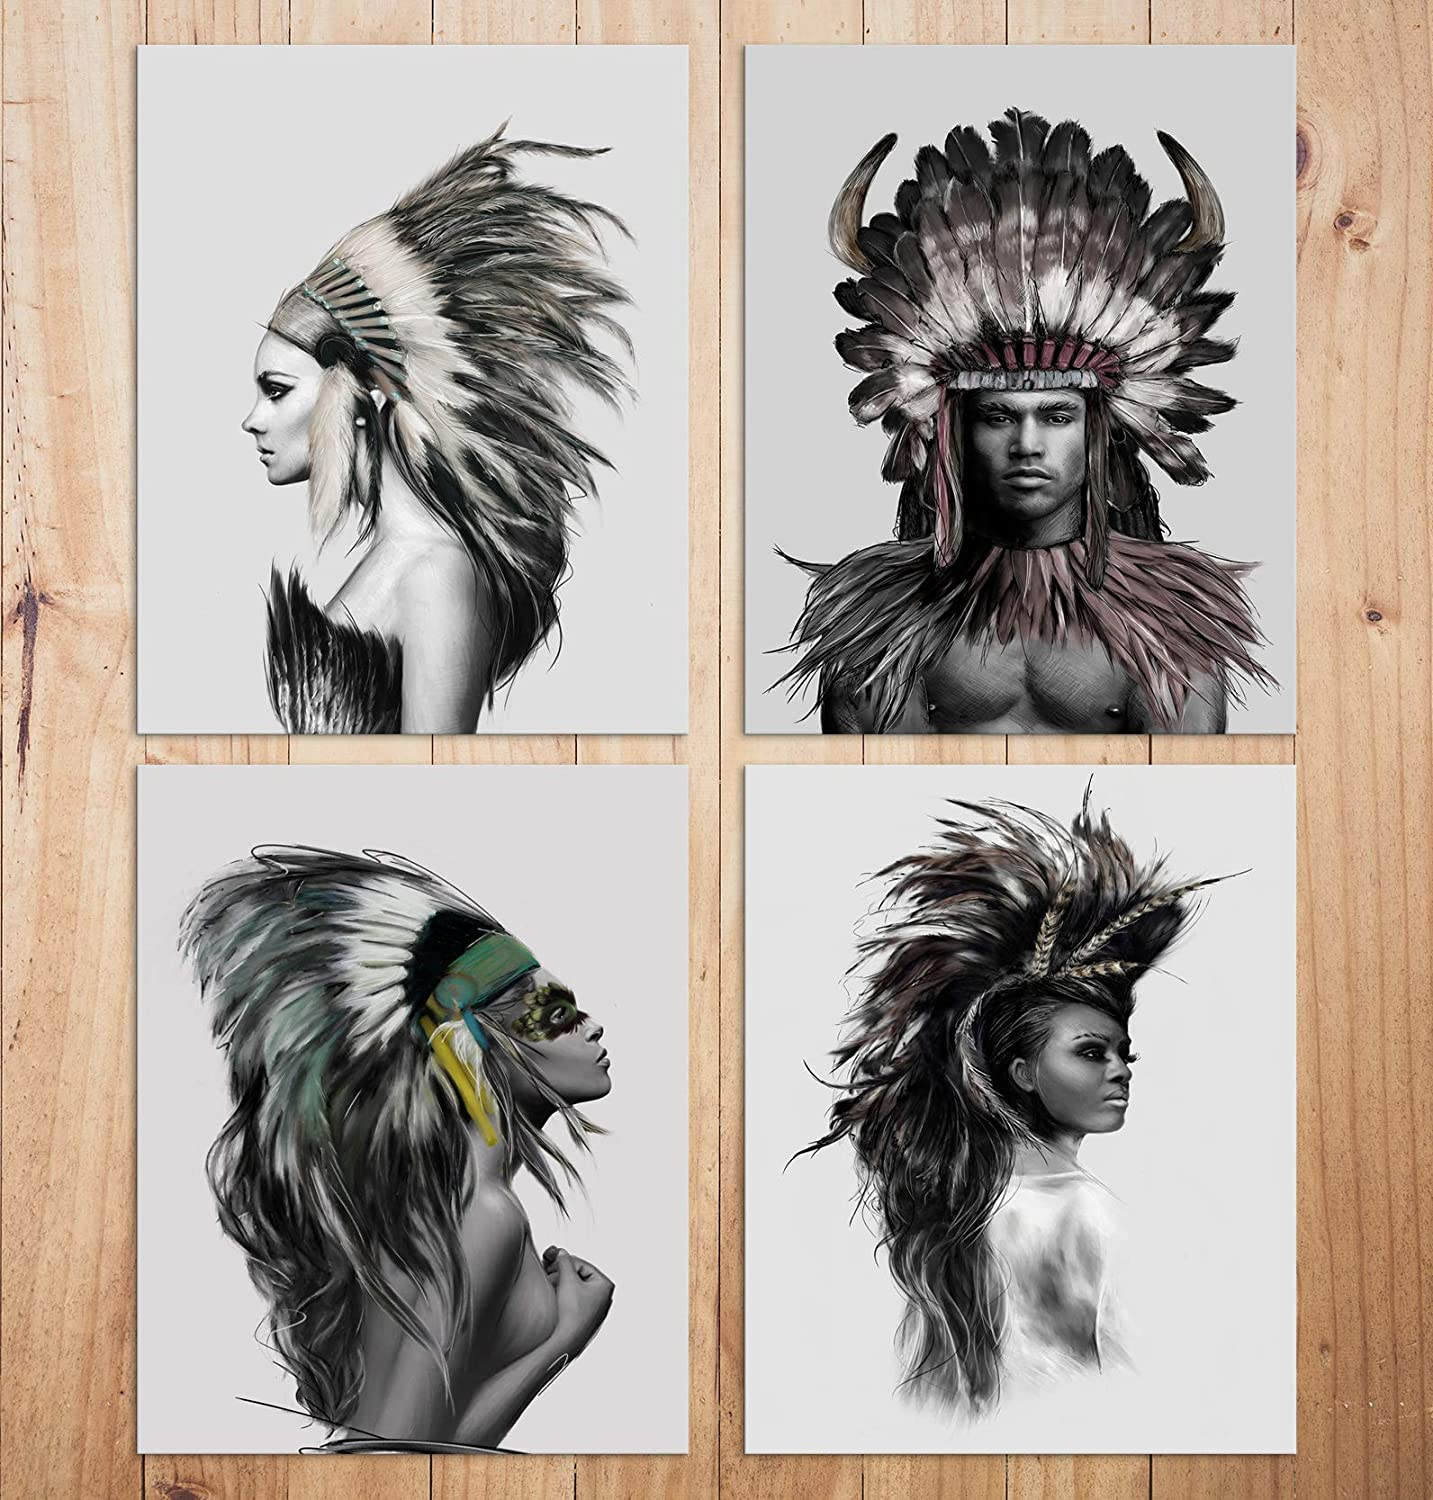 Wall Decor Prints Native Americans Painting Wall Art For Living Room Vintage Pictures Home Decor Poster Artwork (Set of 4) -Unframed - 8x10in